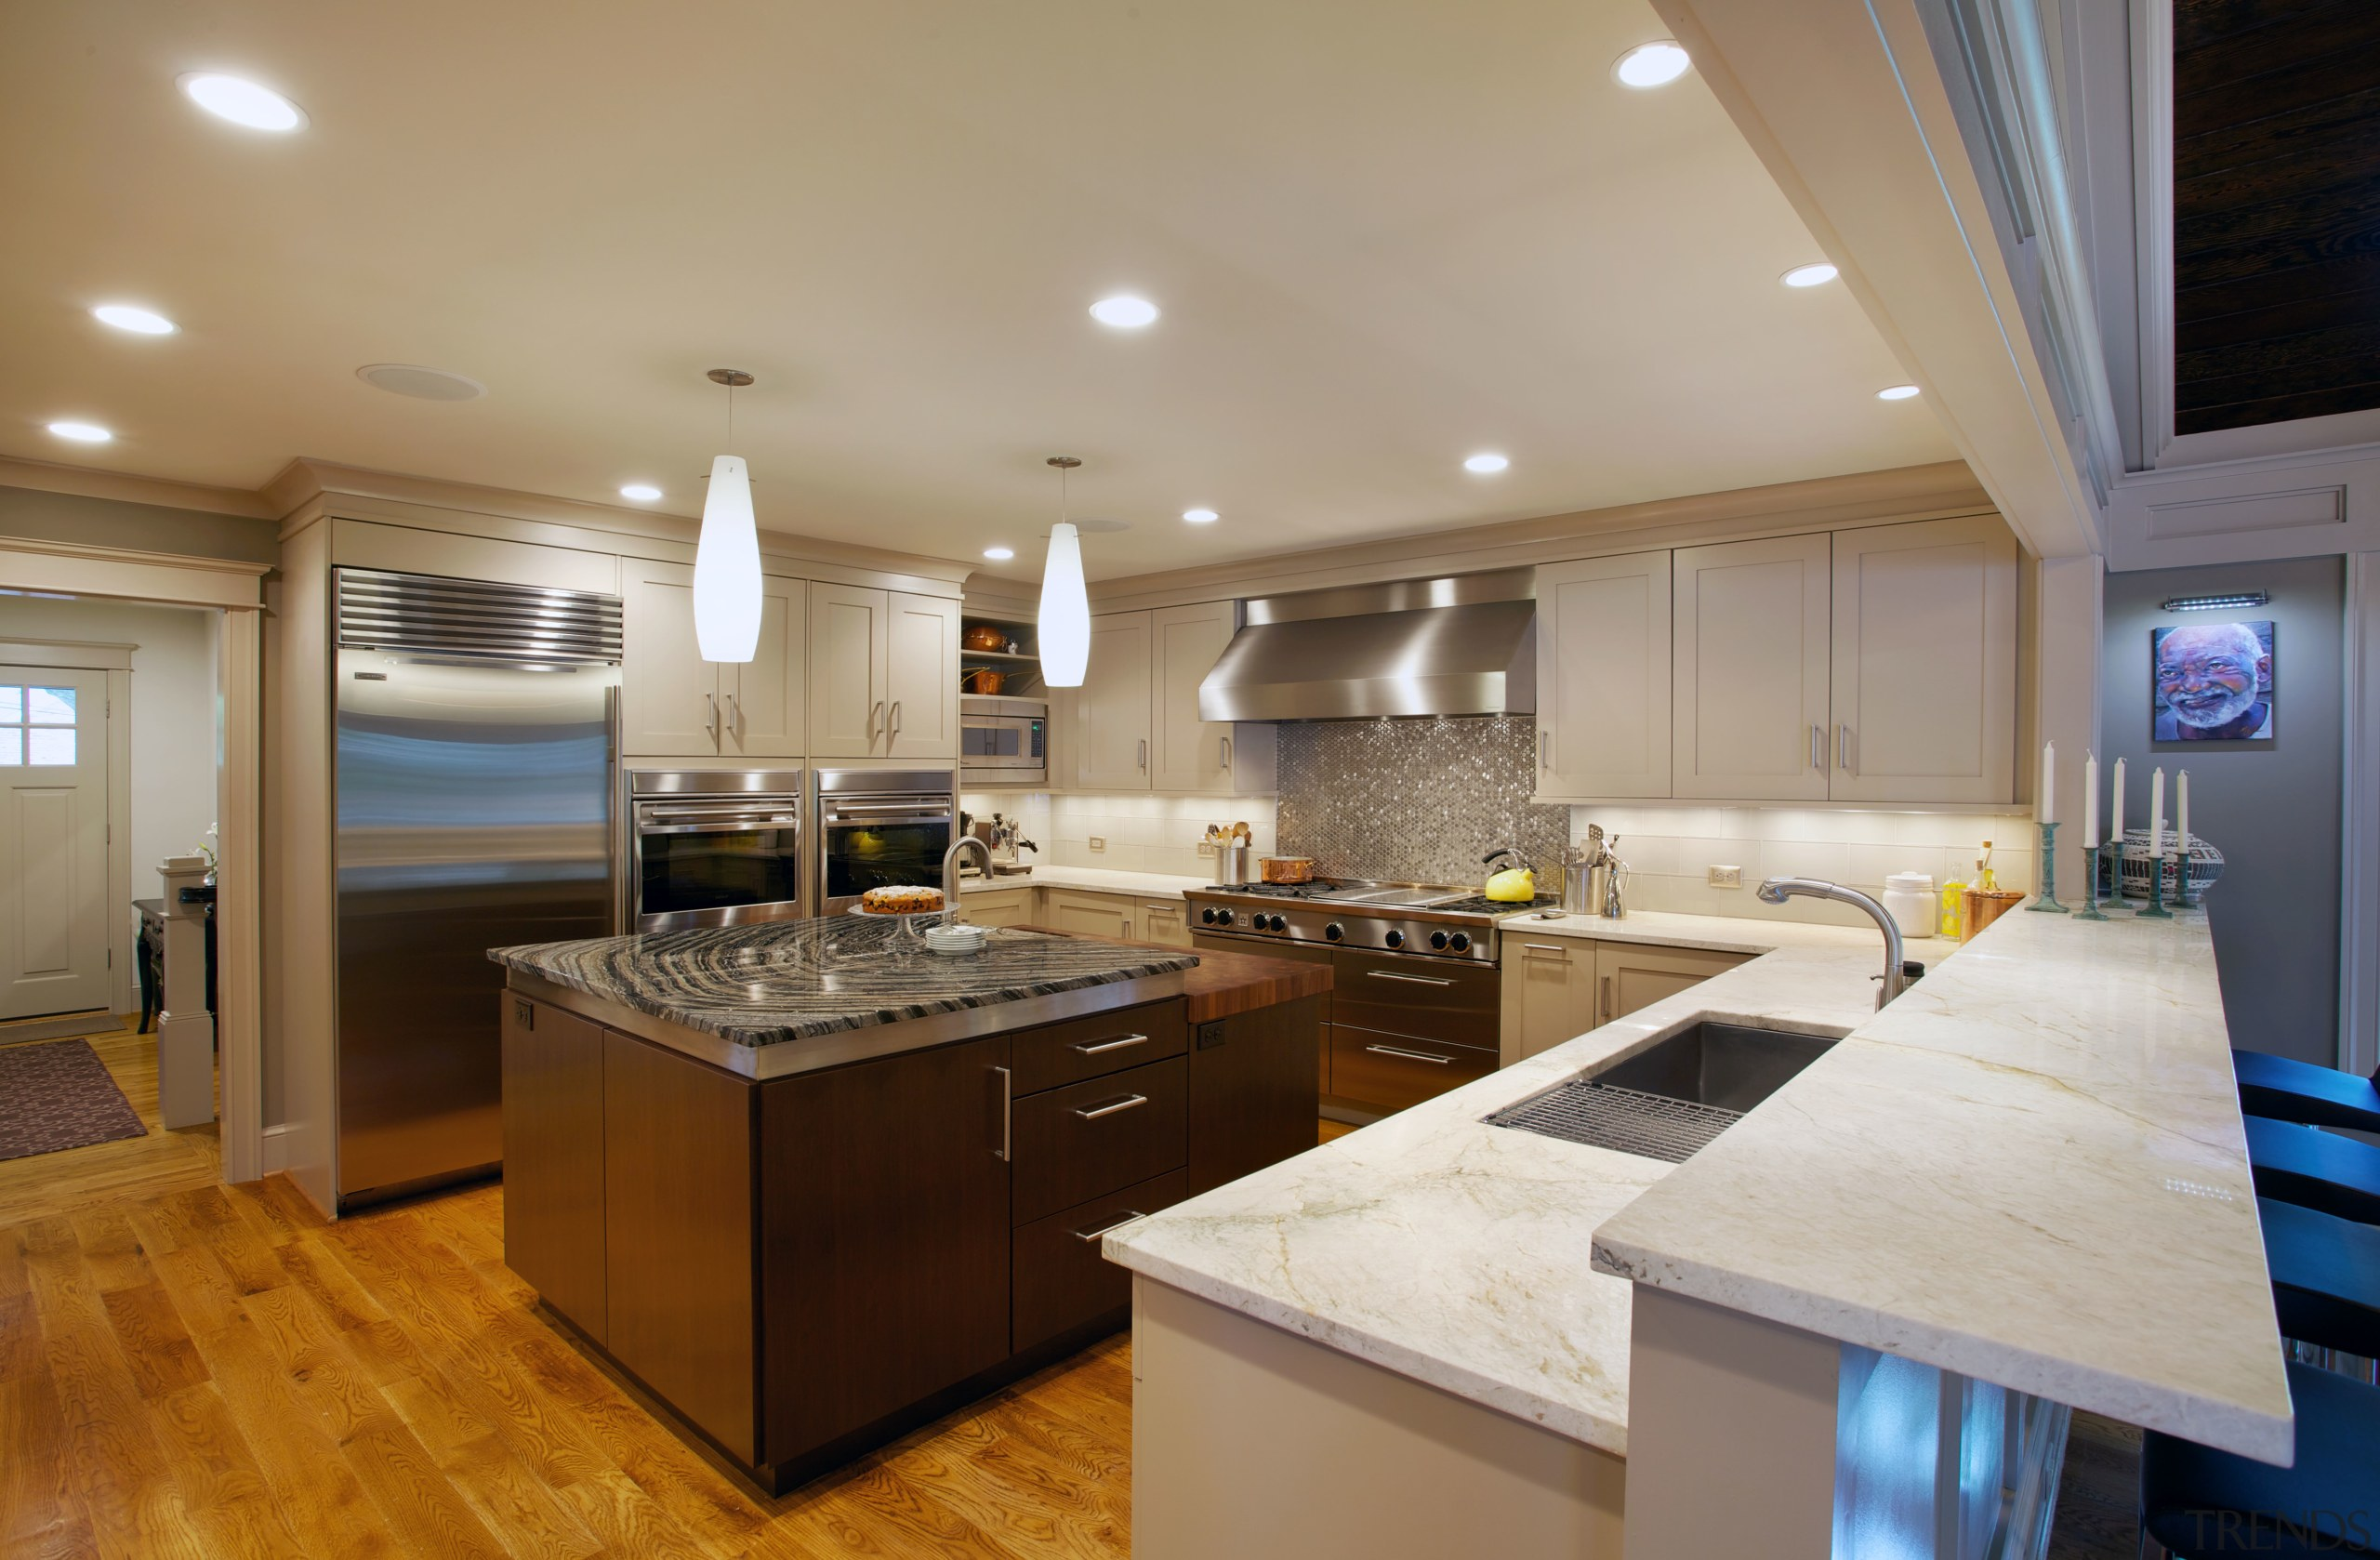 The new kitchen in this remodel by architect cabinetry, ceiling, countertop, cuisine classique, hardwood, interior design, kitchen, real estate, room, gray, brown